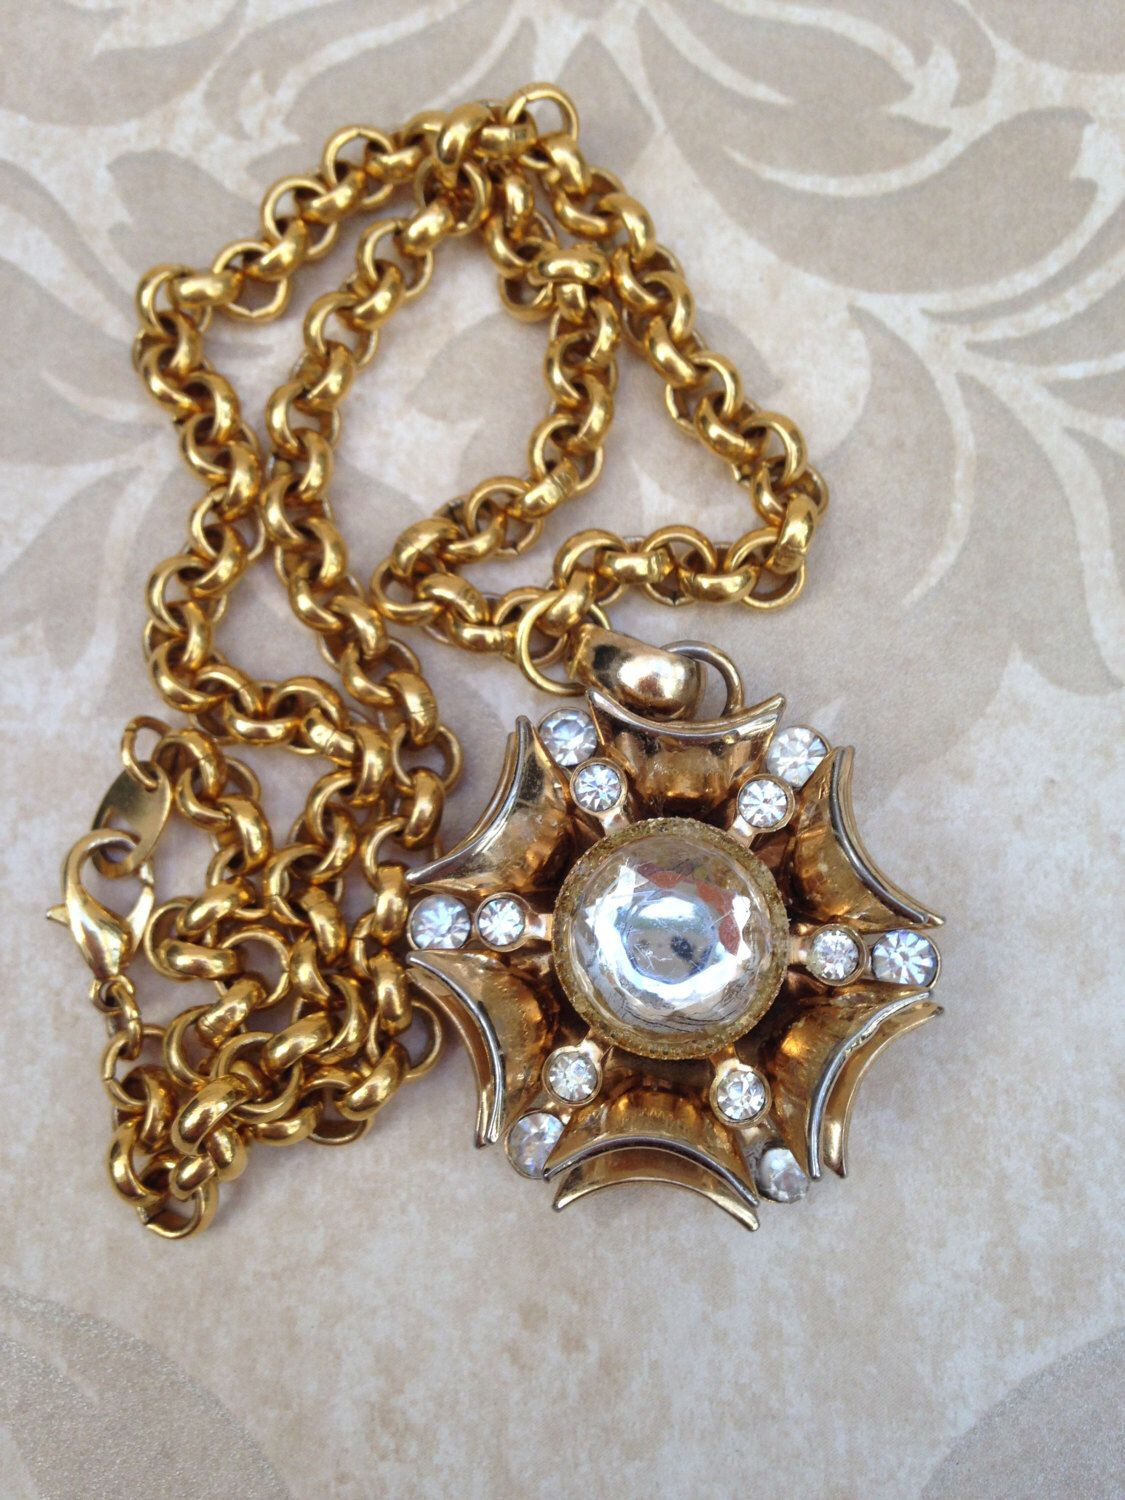 medallion link necklace gold choker greta chain large tone pin substantial well with made for starburst reserved